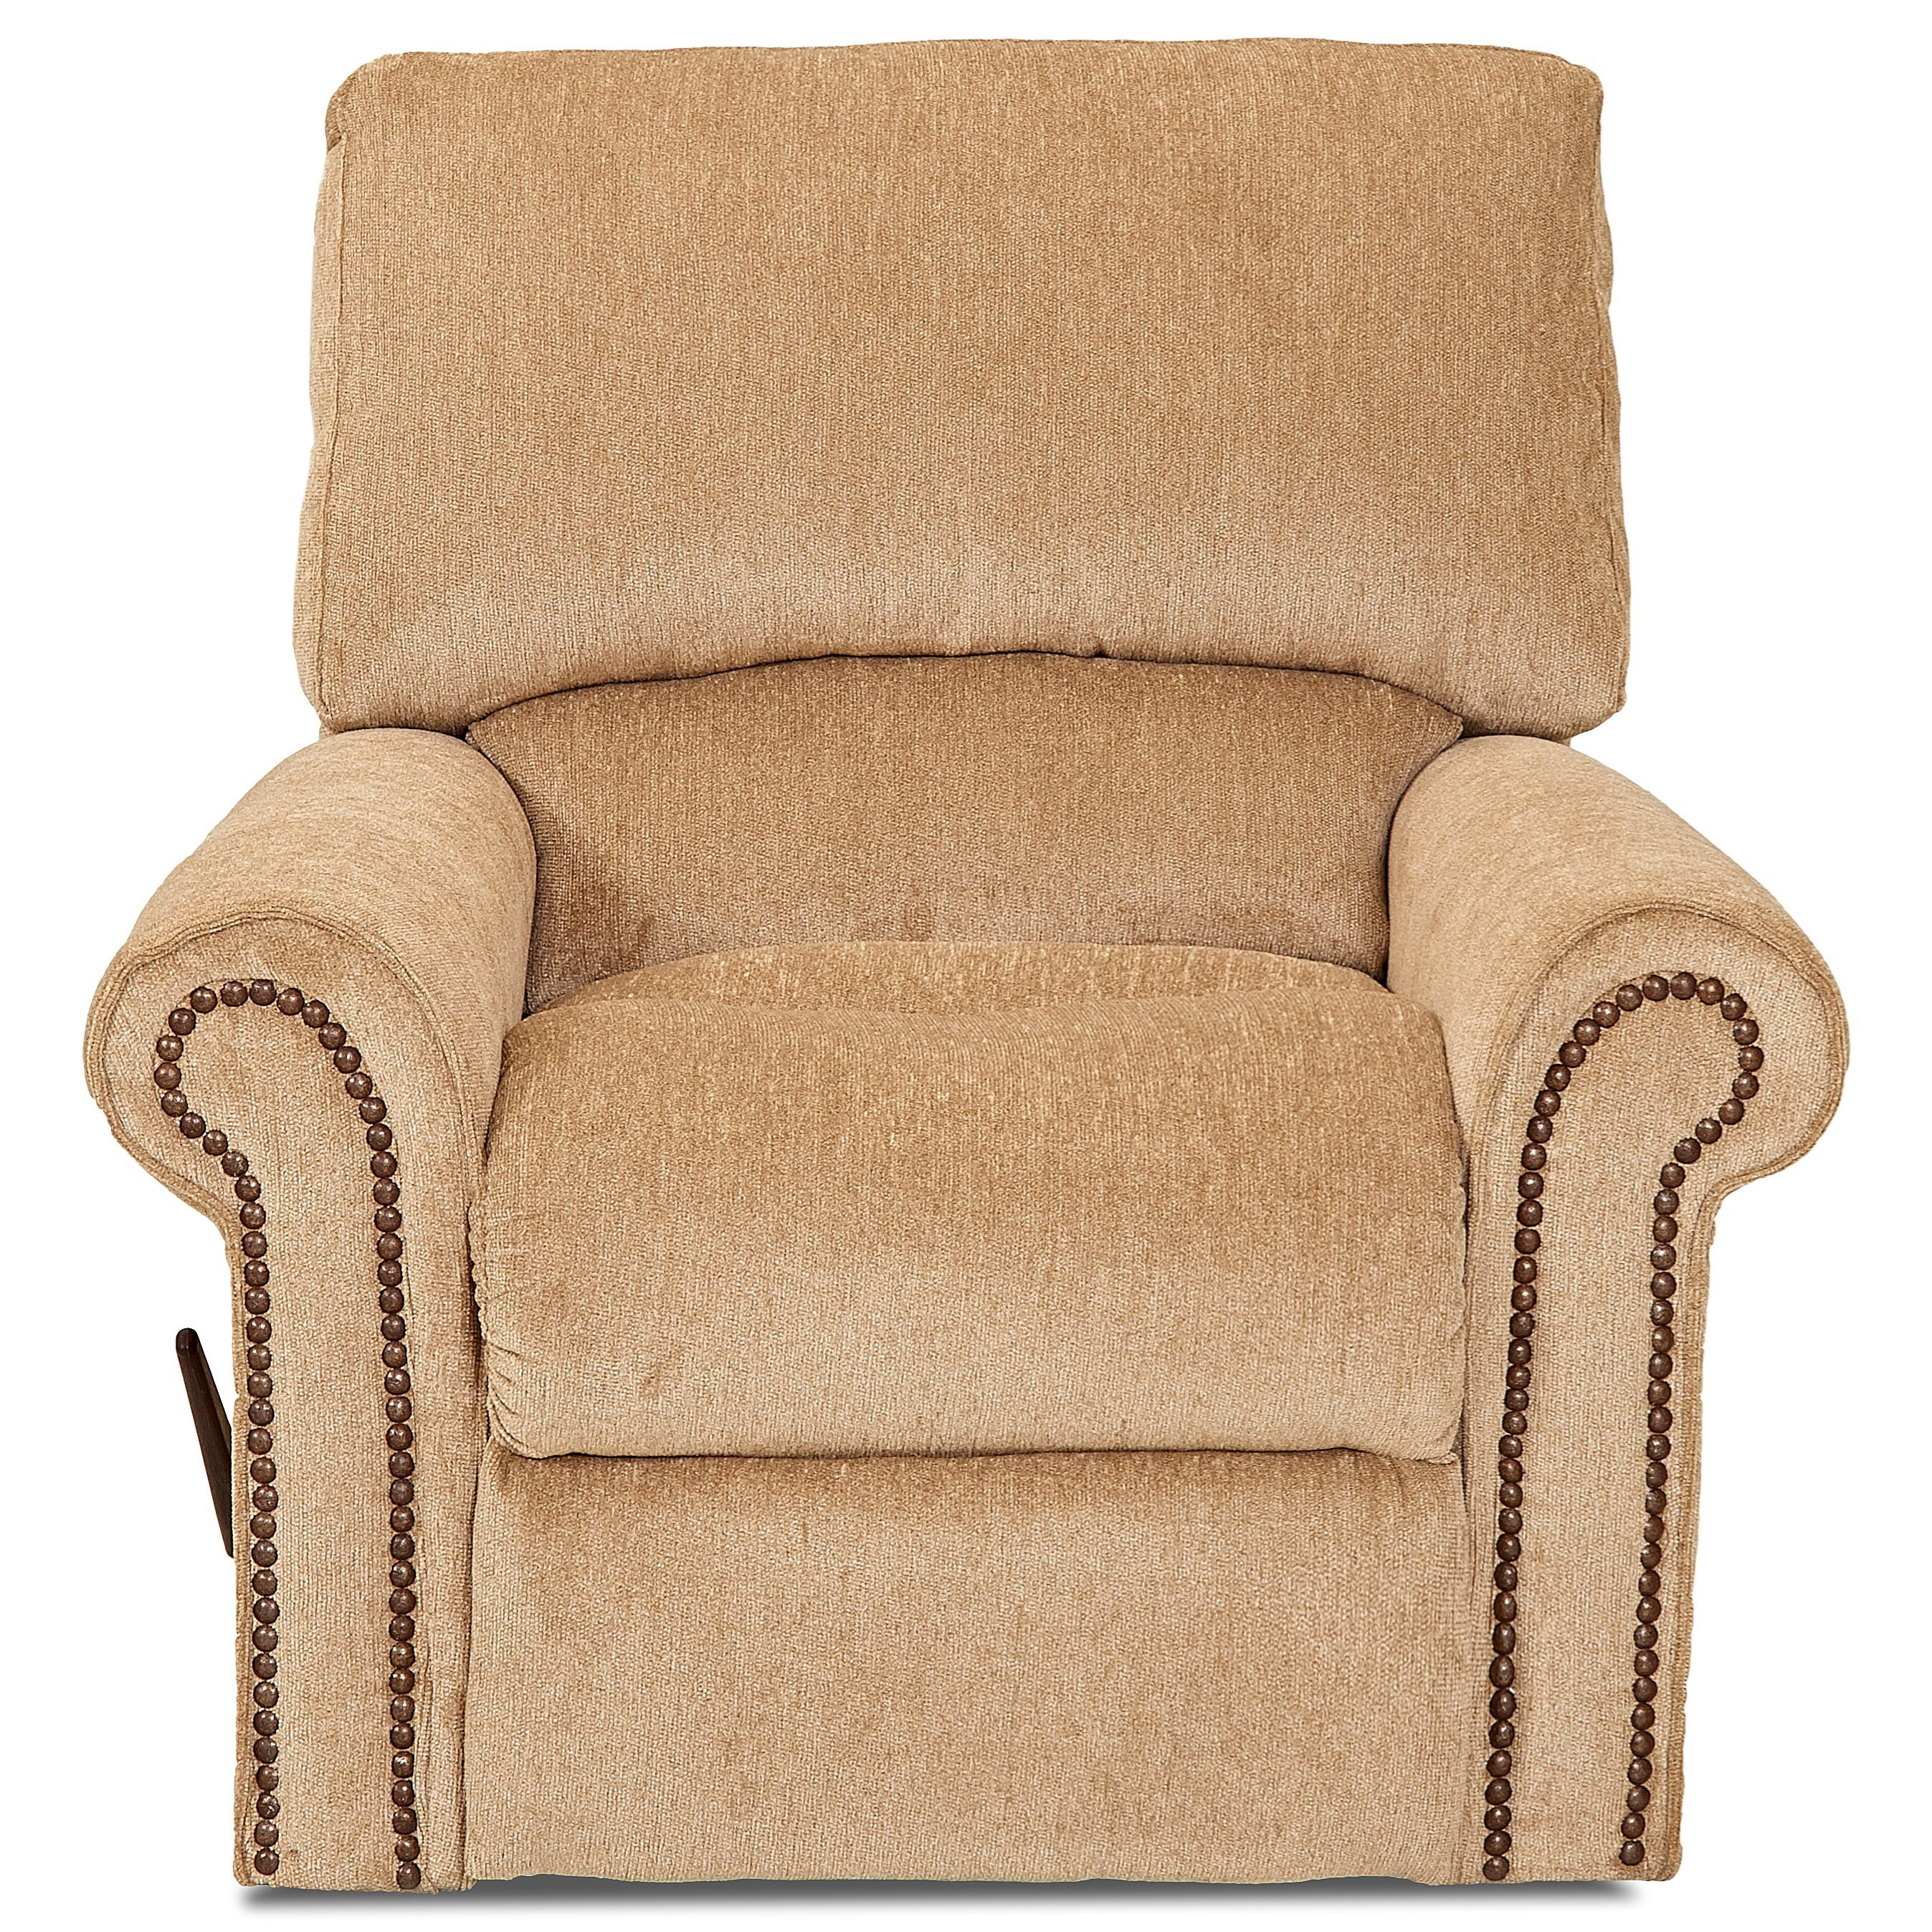 Glider Recliner with Rolled Arms and Nailheads